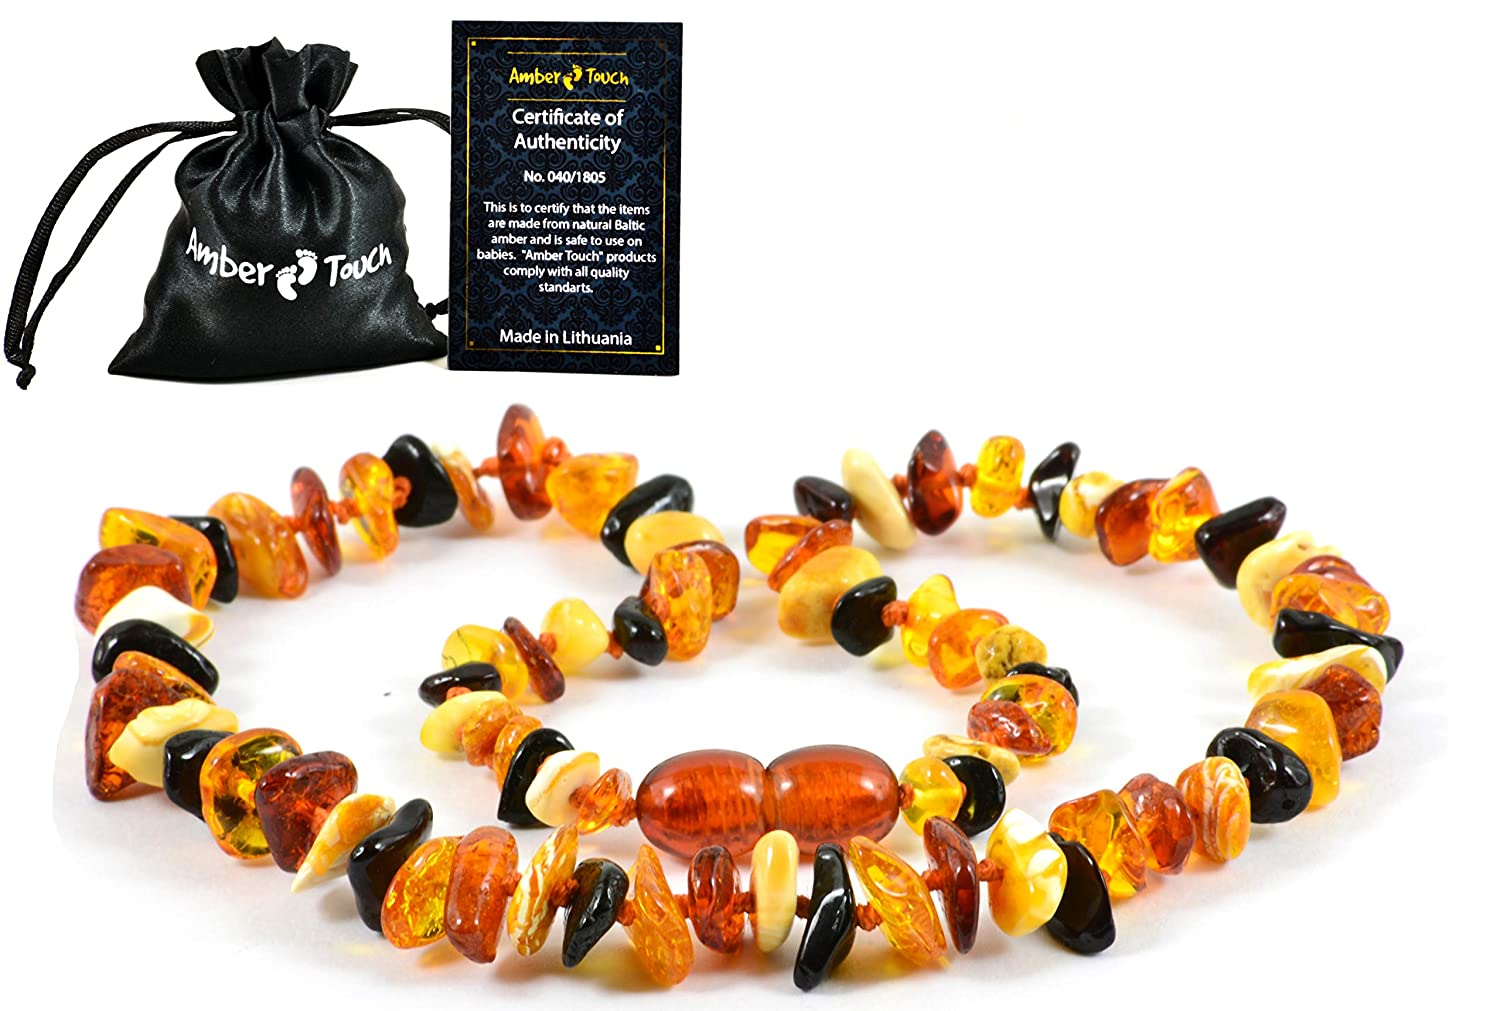 Drooling and Teething Pain Reducing Natural Remedy Amber Teething Necklace for Babies Anti Inflammatory Perfect Baby Shower Gift Amber-Touch Made of Highest Quality Certified Baltic Amber